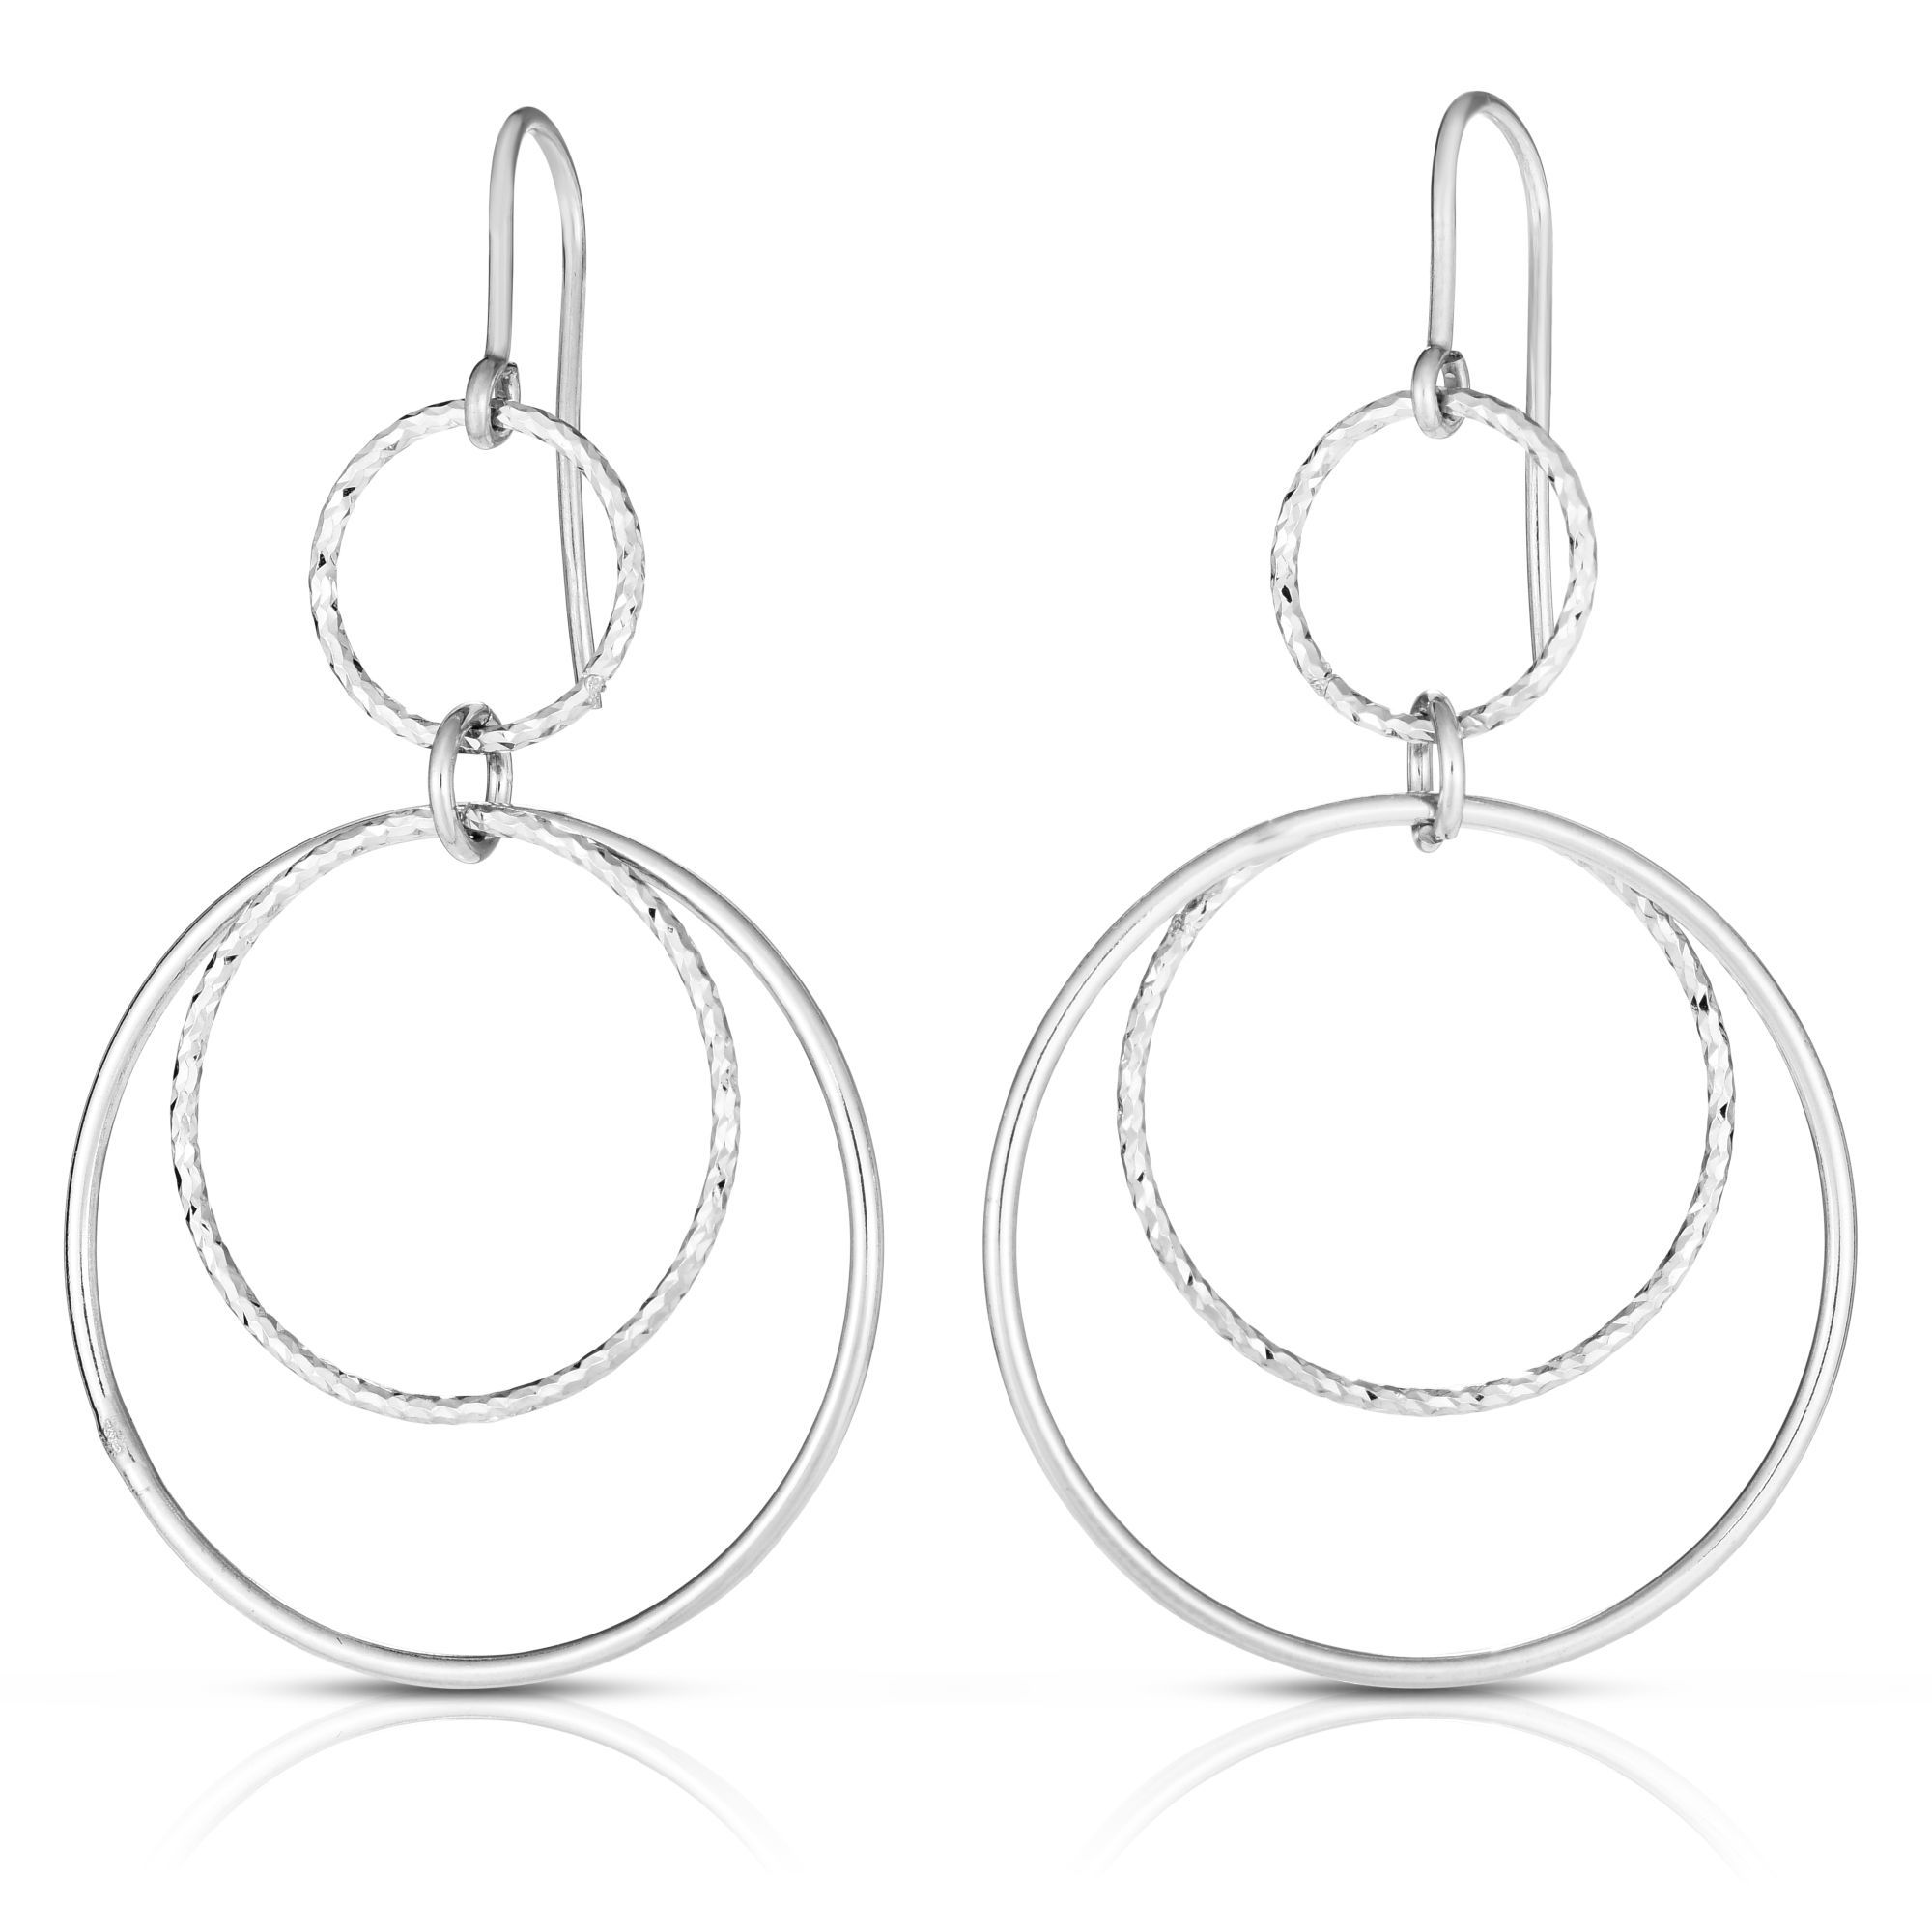 Silver with Rhodium Finish 4.0mm Shiny Textured Round Hoop Huggies Earring